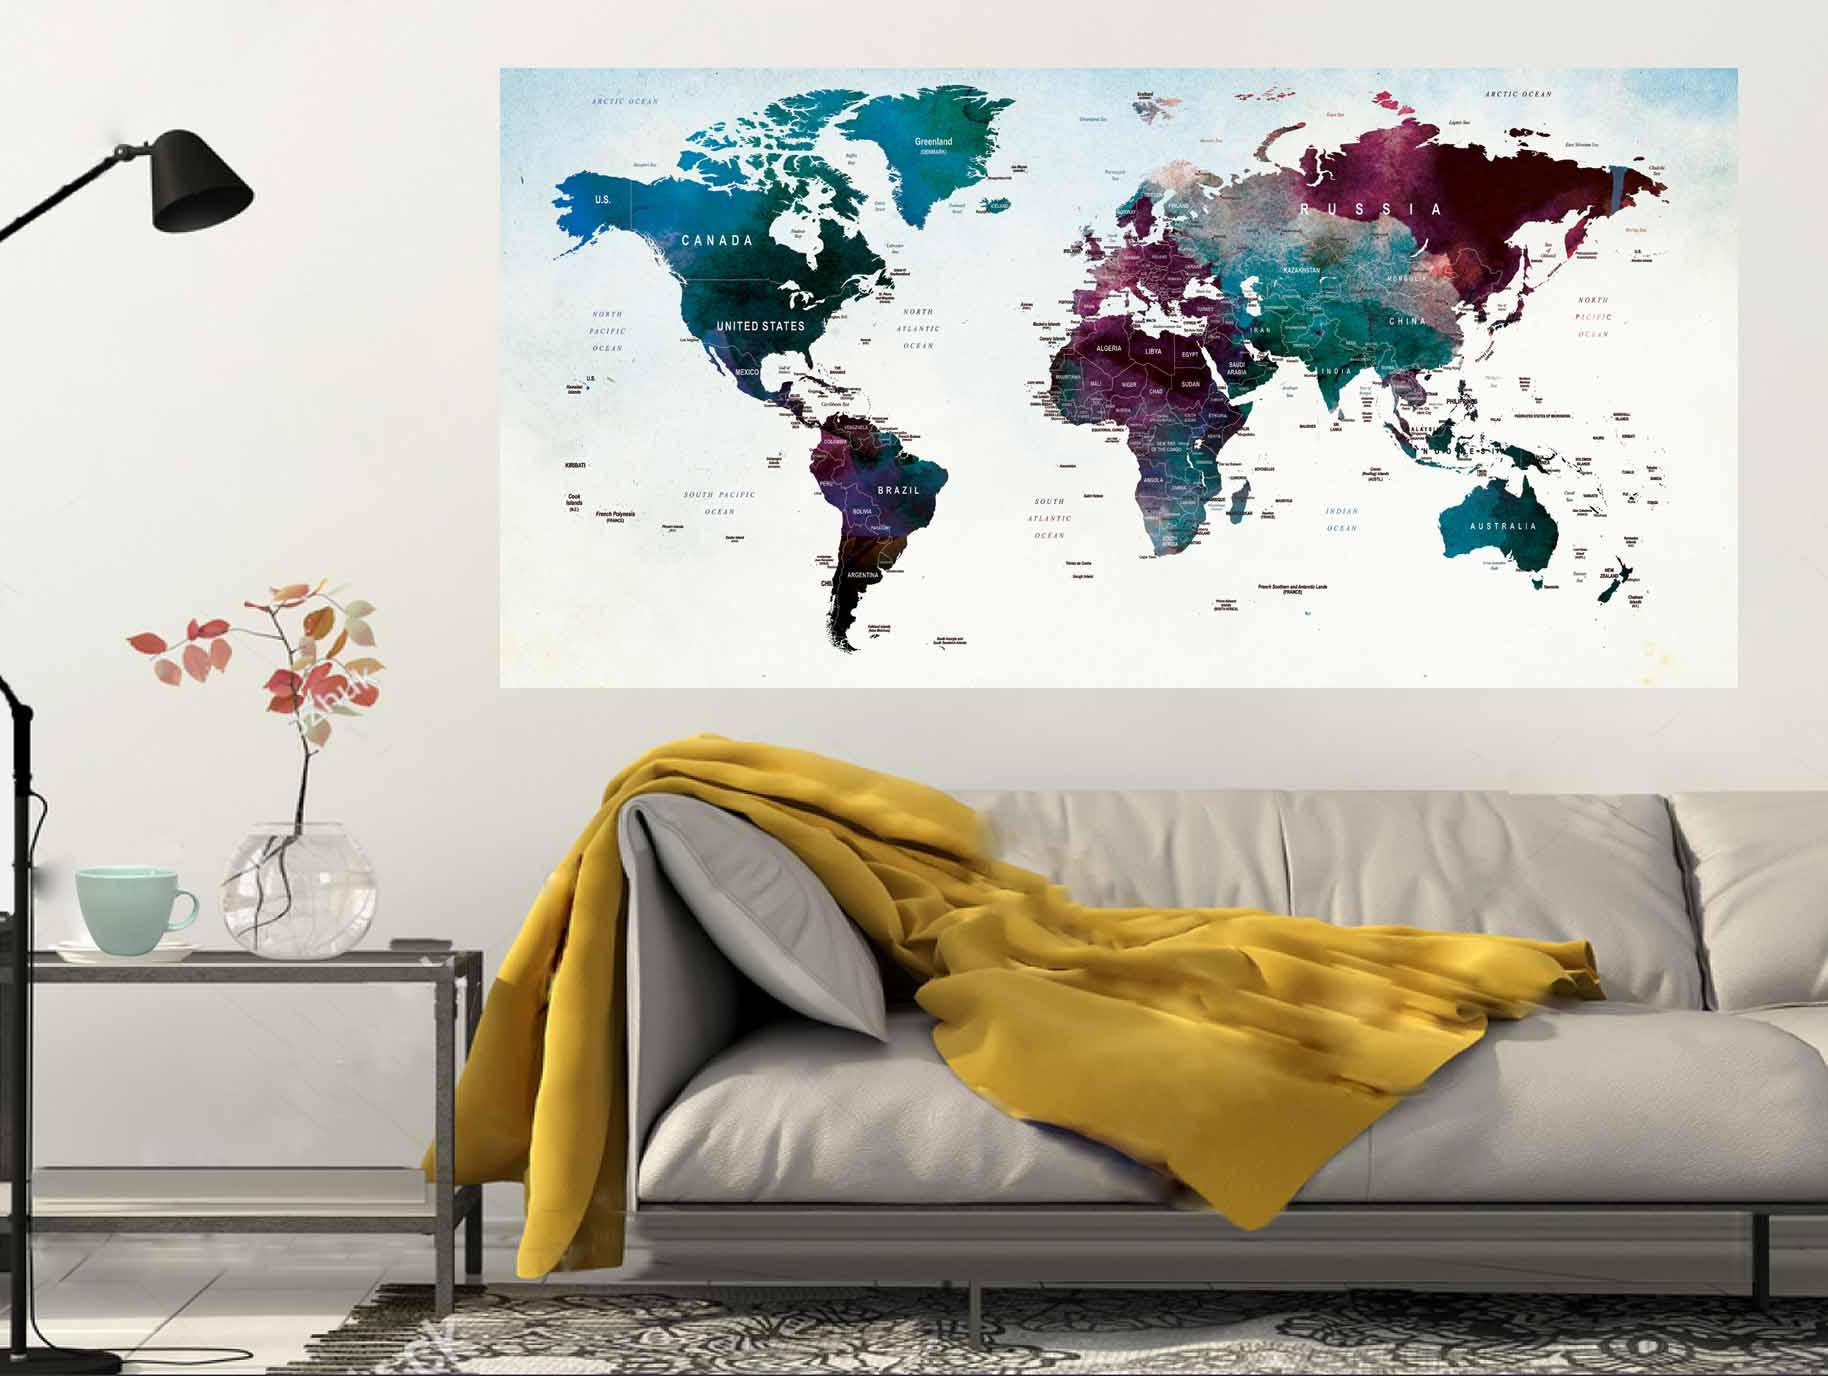 World mapworld map wall decalworld map posterlarge world map world mapworld map wall decalworld map posterlarge world map wall decalpush pin map posterpush pin map wall decalworld map wall art gumiabroncs Images